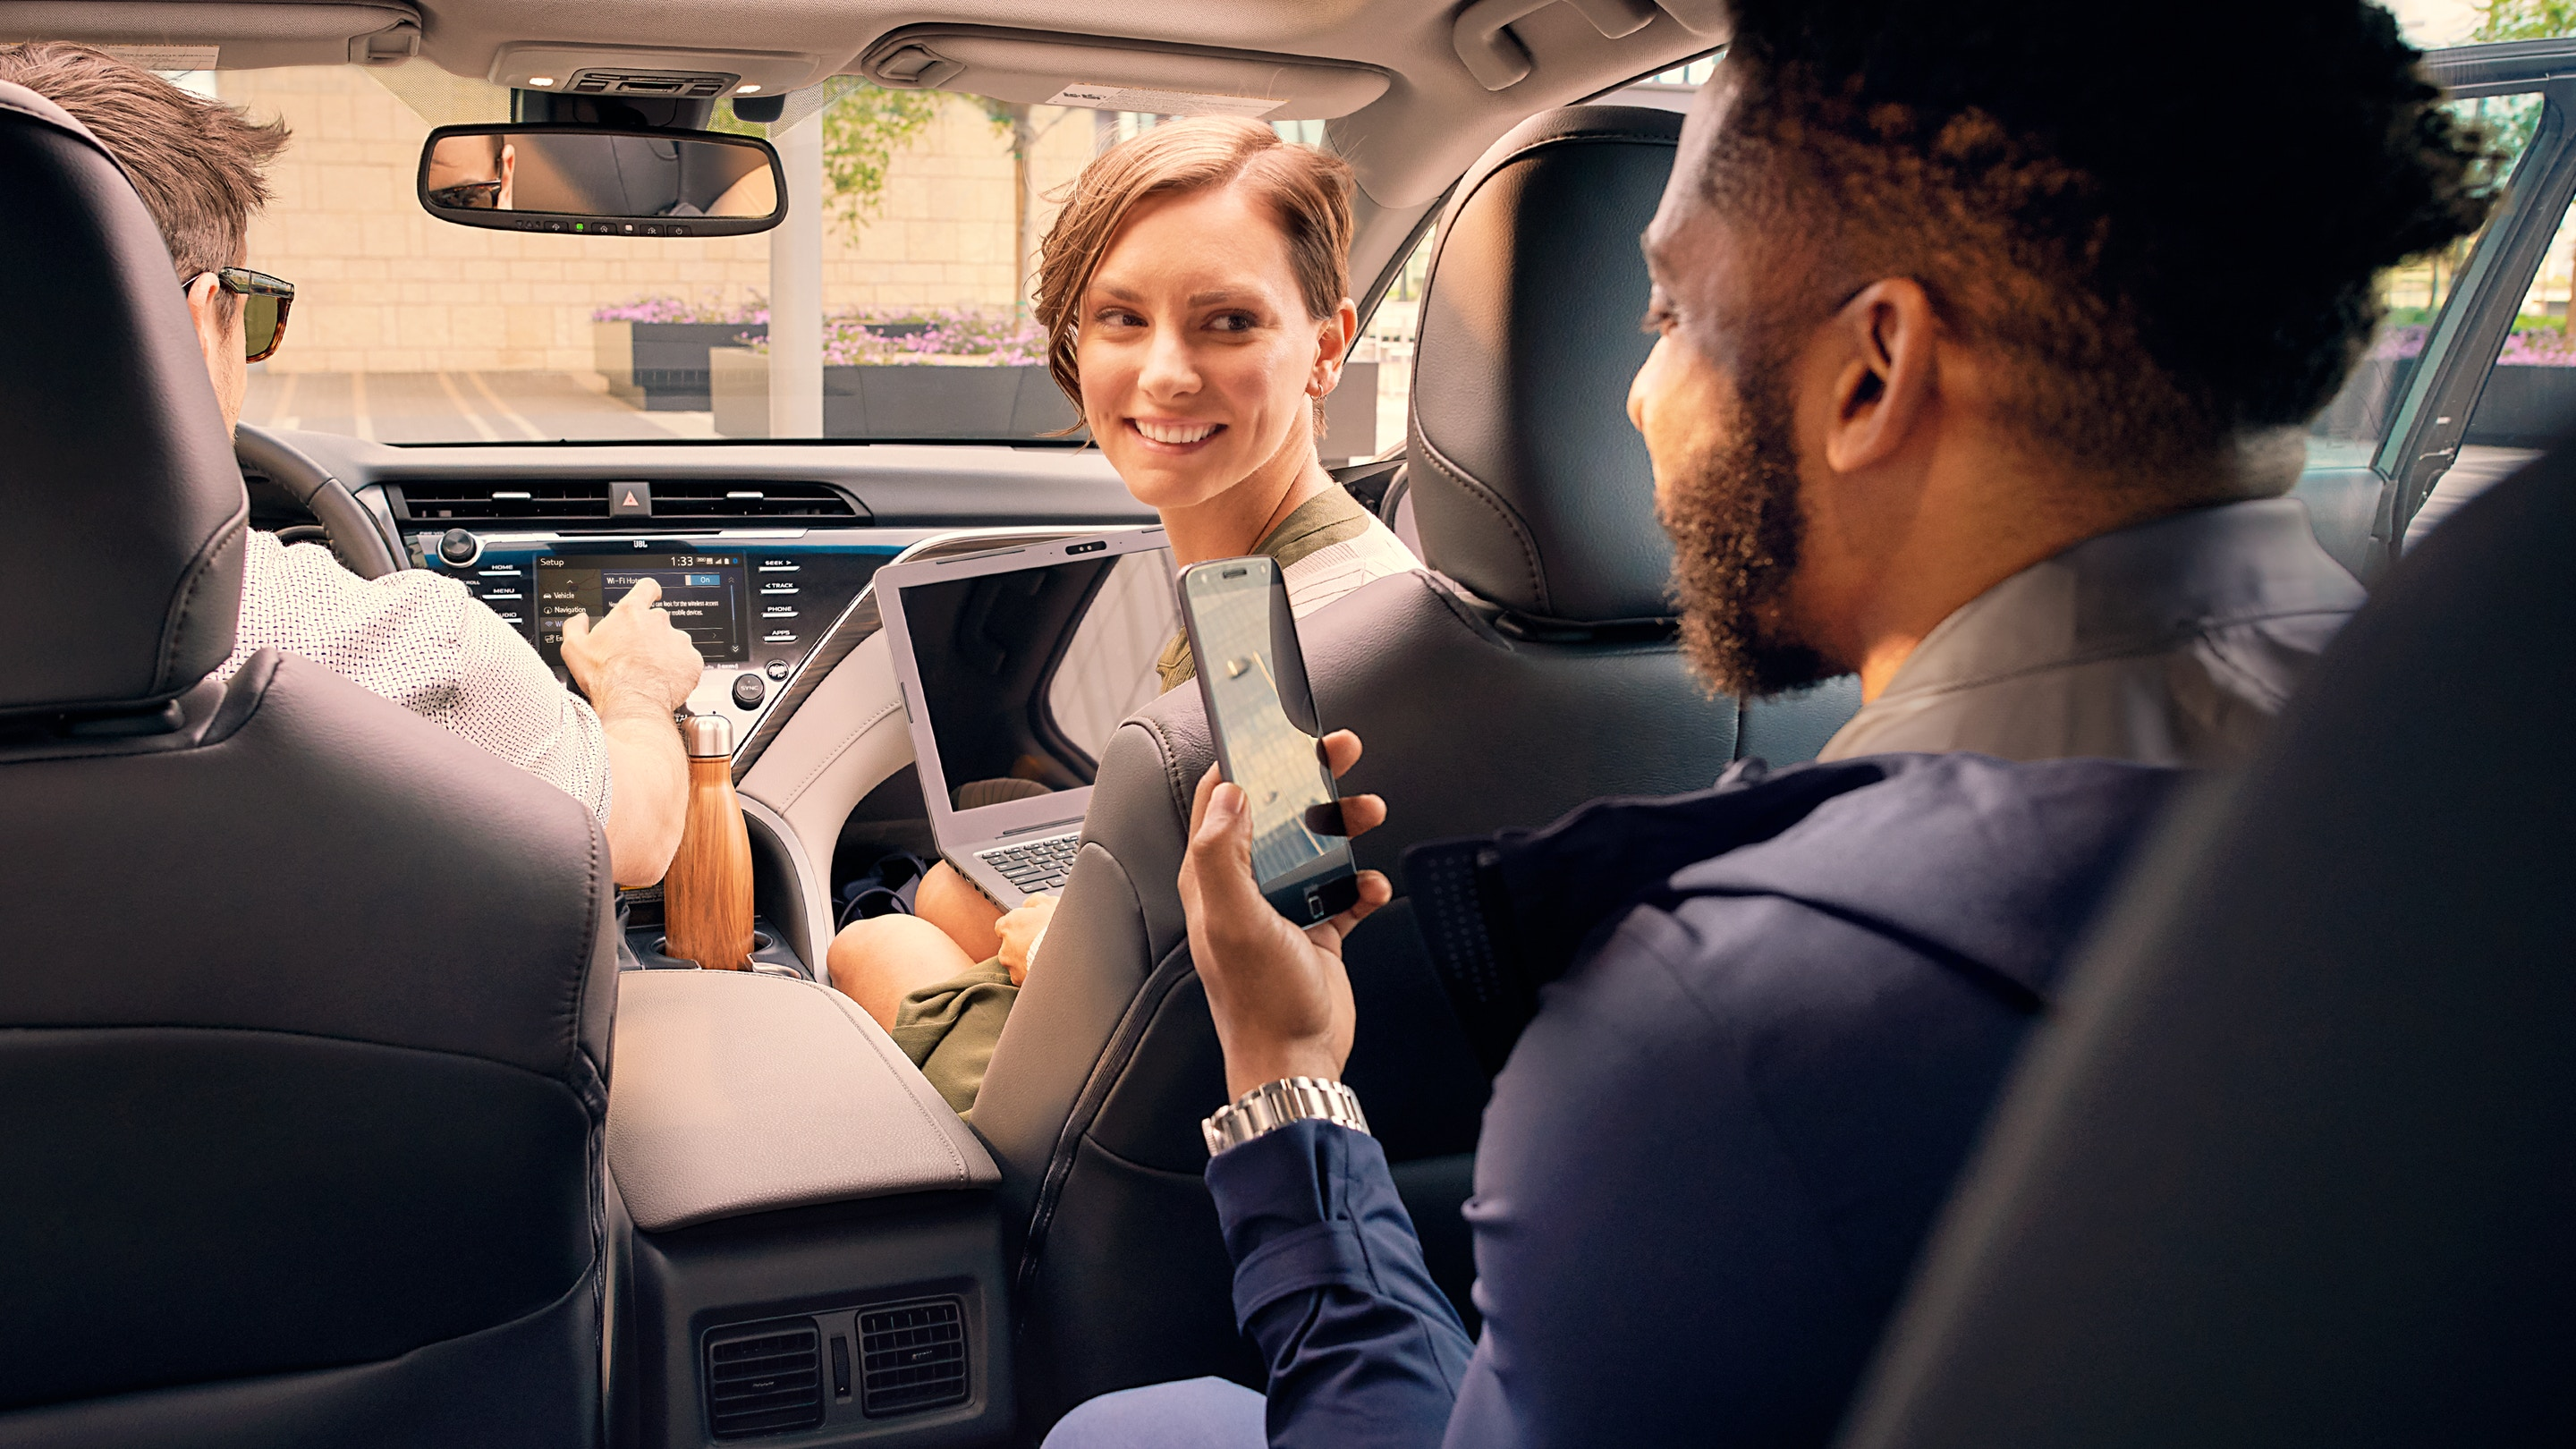 Stay Connected in the 2020 Toyota Camry!